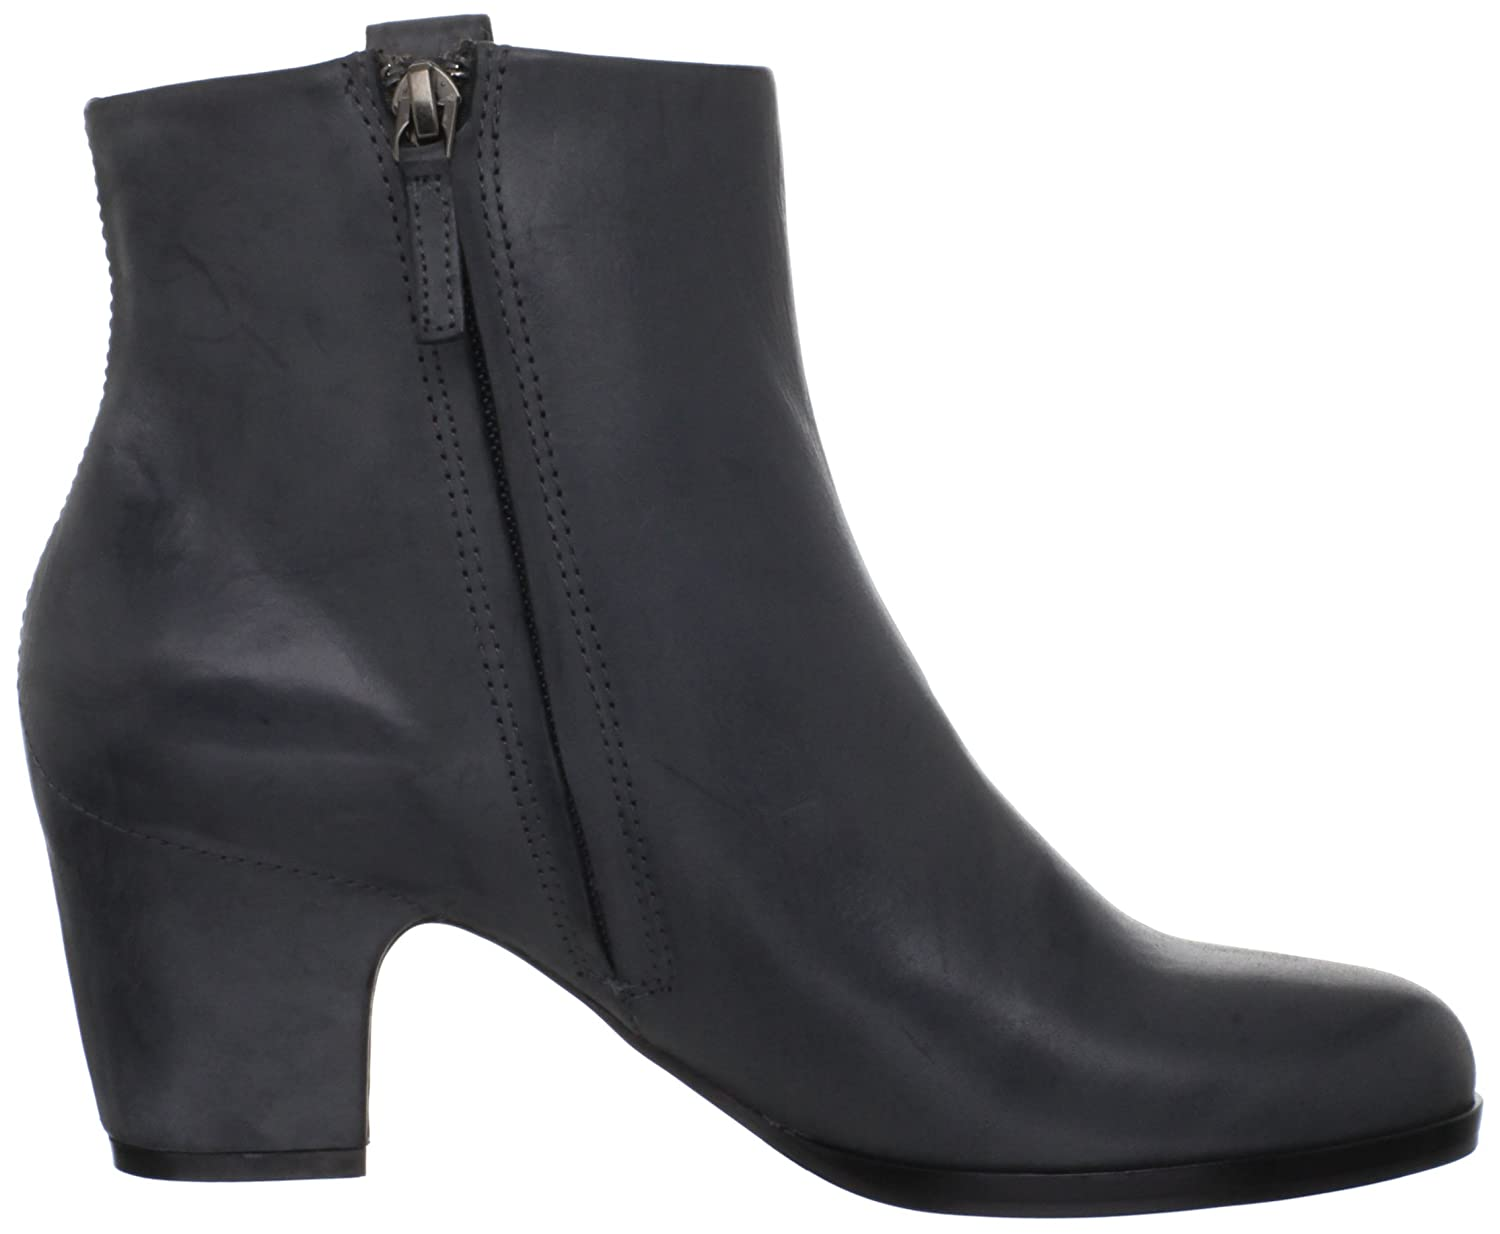 Gentle Souls by Kenneth Cole Women's Soft Cast Ankle Boot B007H4DL44 10 B(M) US|Charcoal Blue